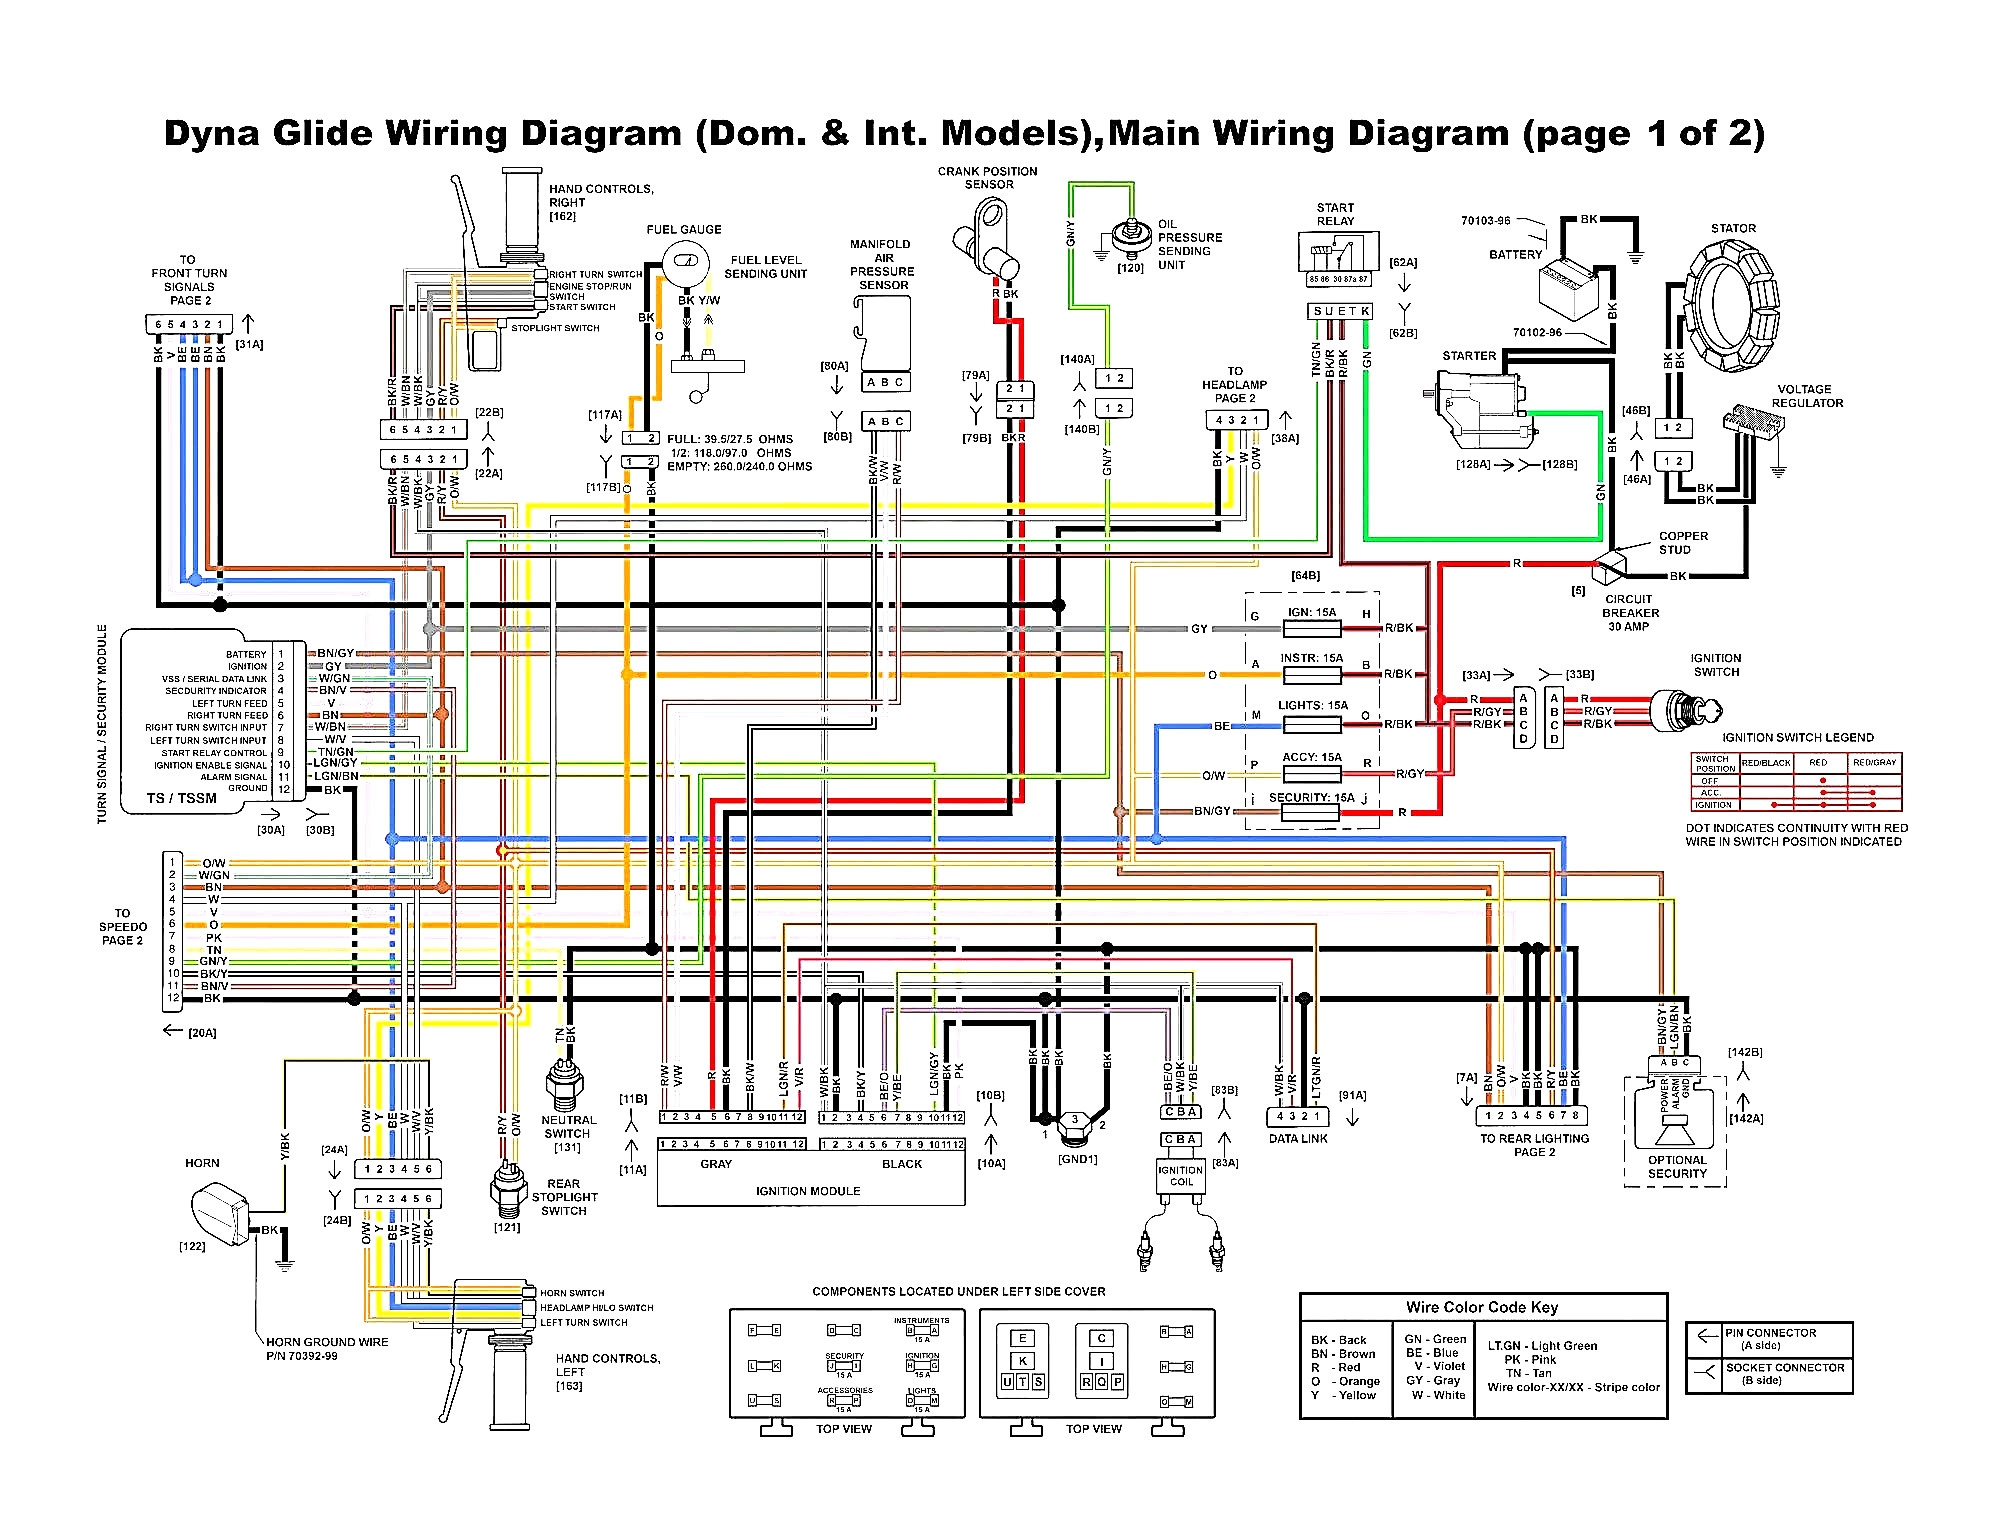 Wiring Diagram for Harley Davidson softail | Free Wiring ...